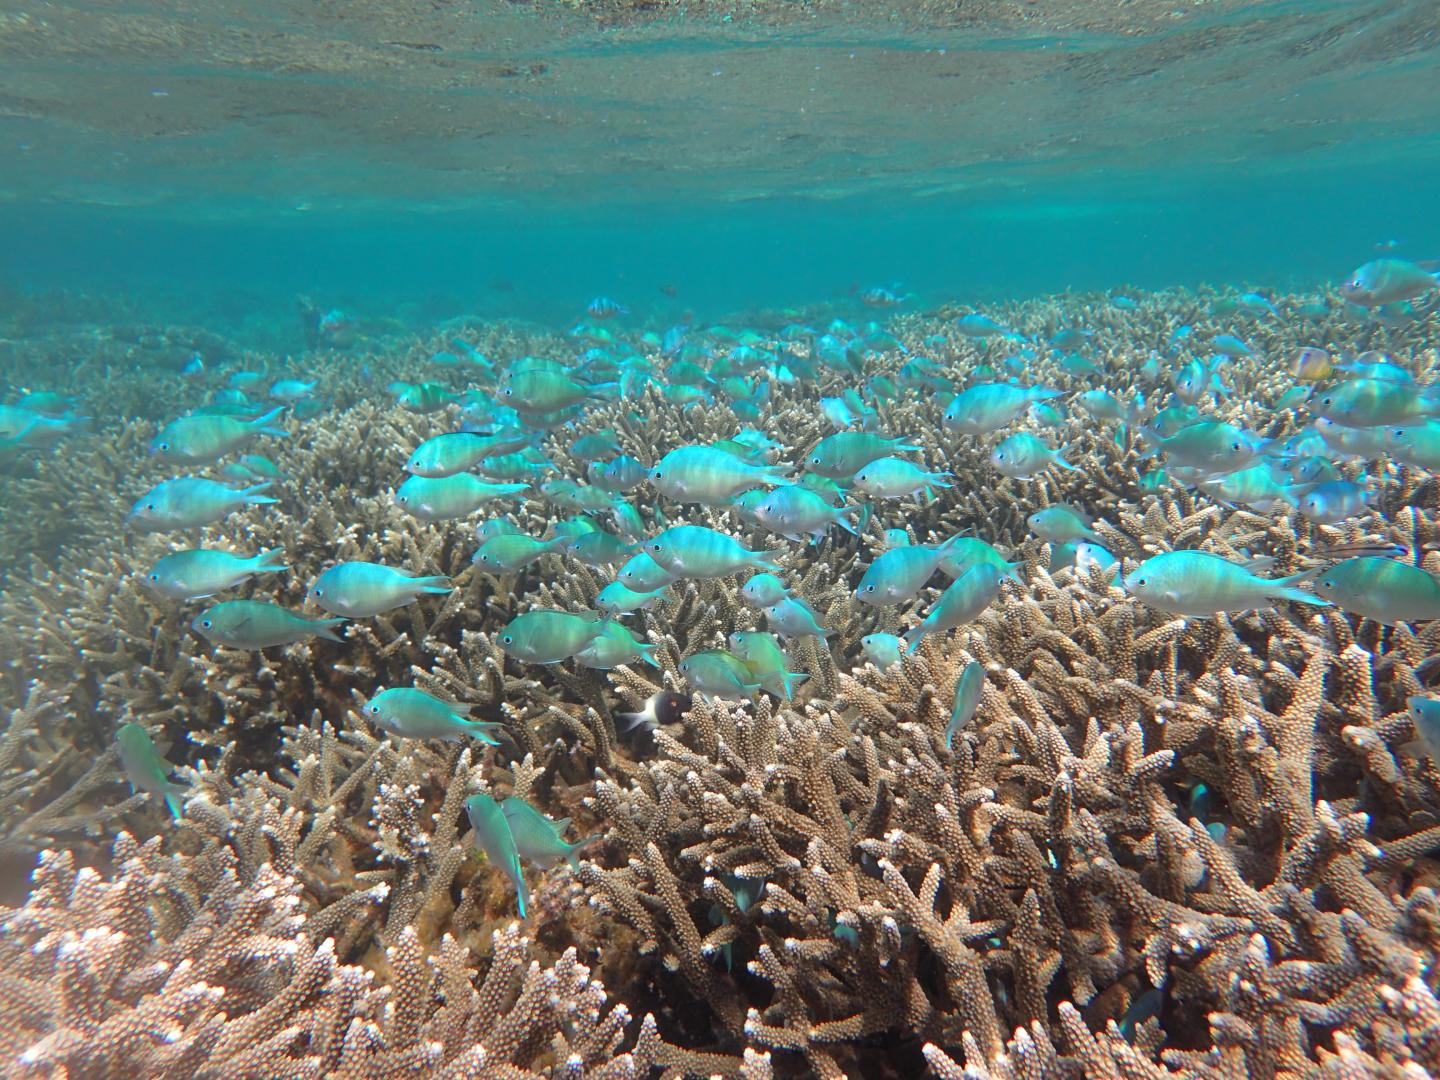 These are fish congregating on the Kitutia Reef. CREDIT Jennifer O'Leary